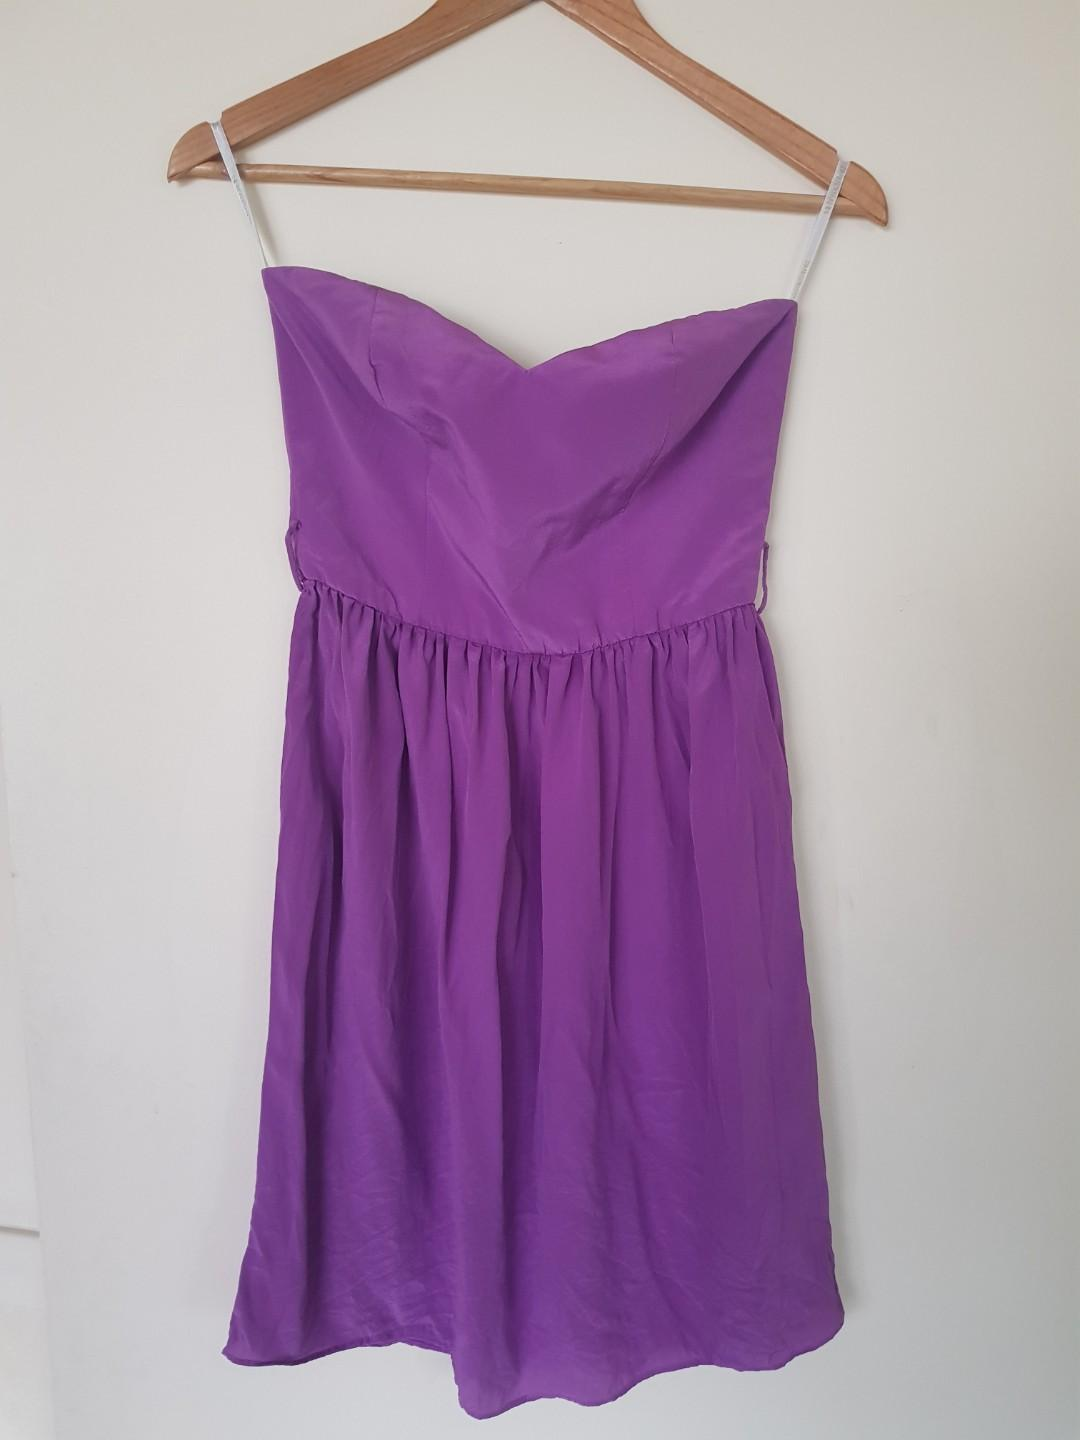 ZIMMERMANN Purple Strapless Sweetheart Size 0 (6 or XS)